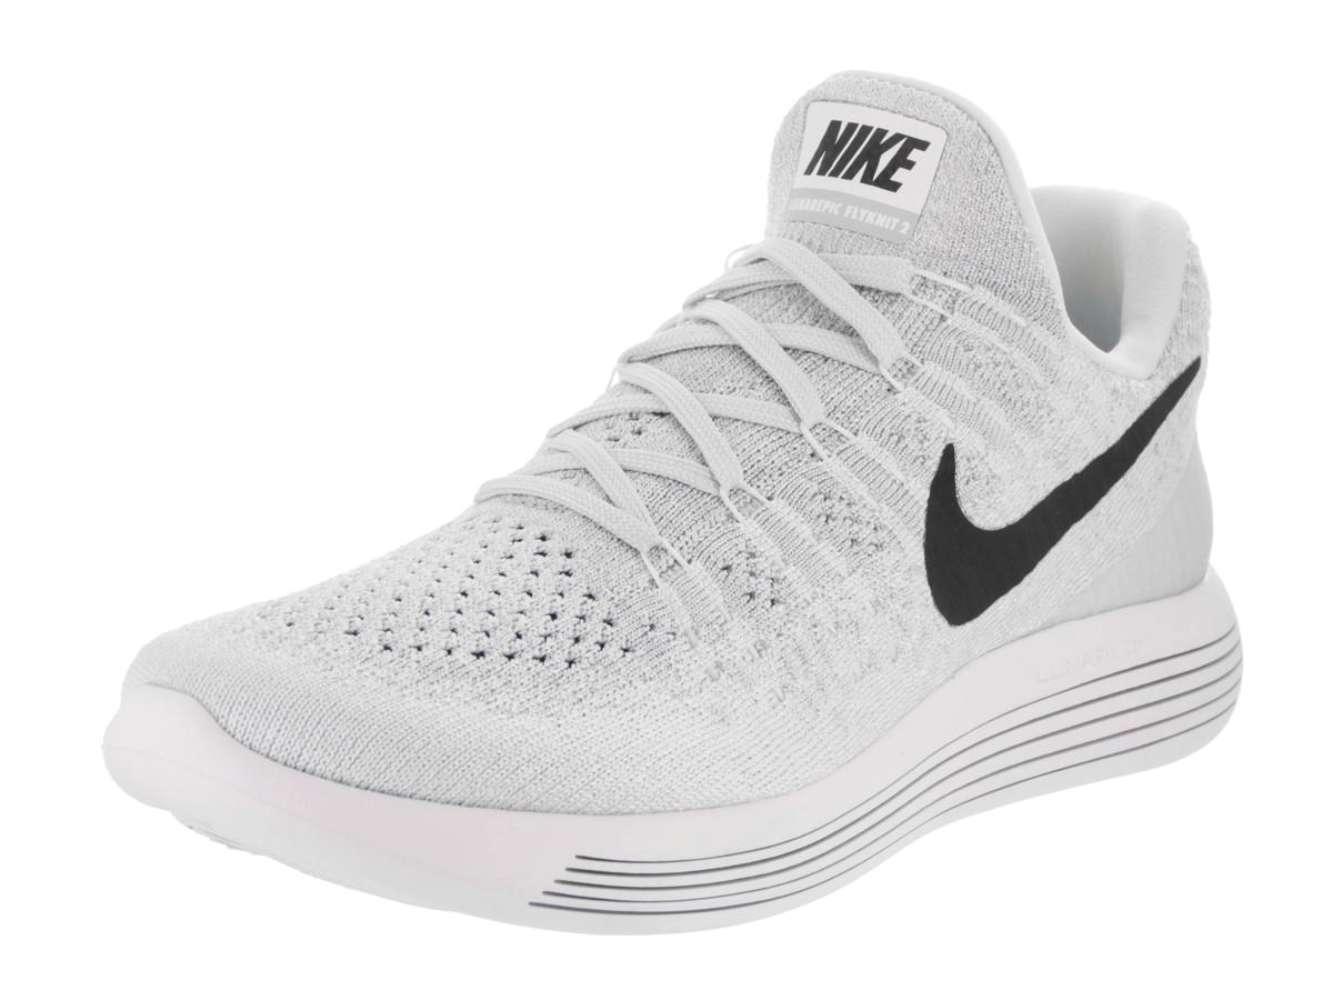 2c856cf73f18 Nike Mens Lunarepic Low Flyknit 2 Low Top Lace Up Running Sneaker